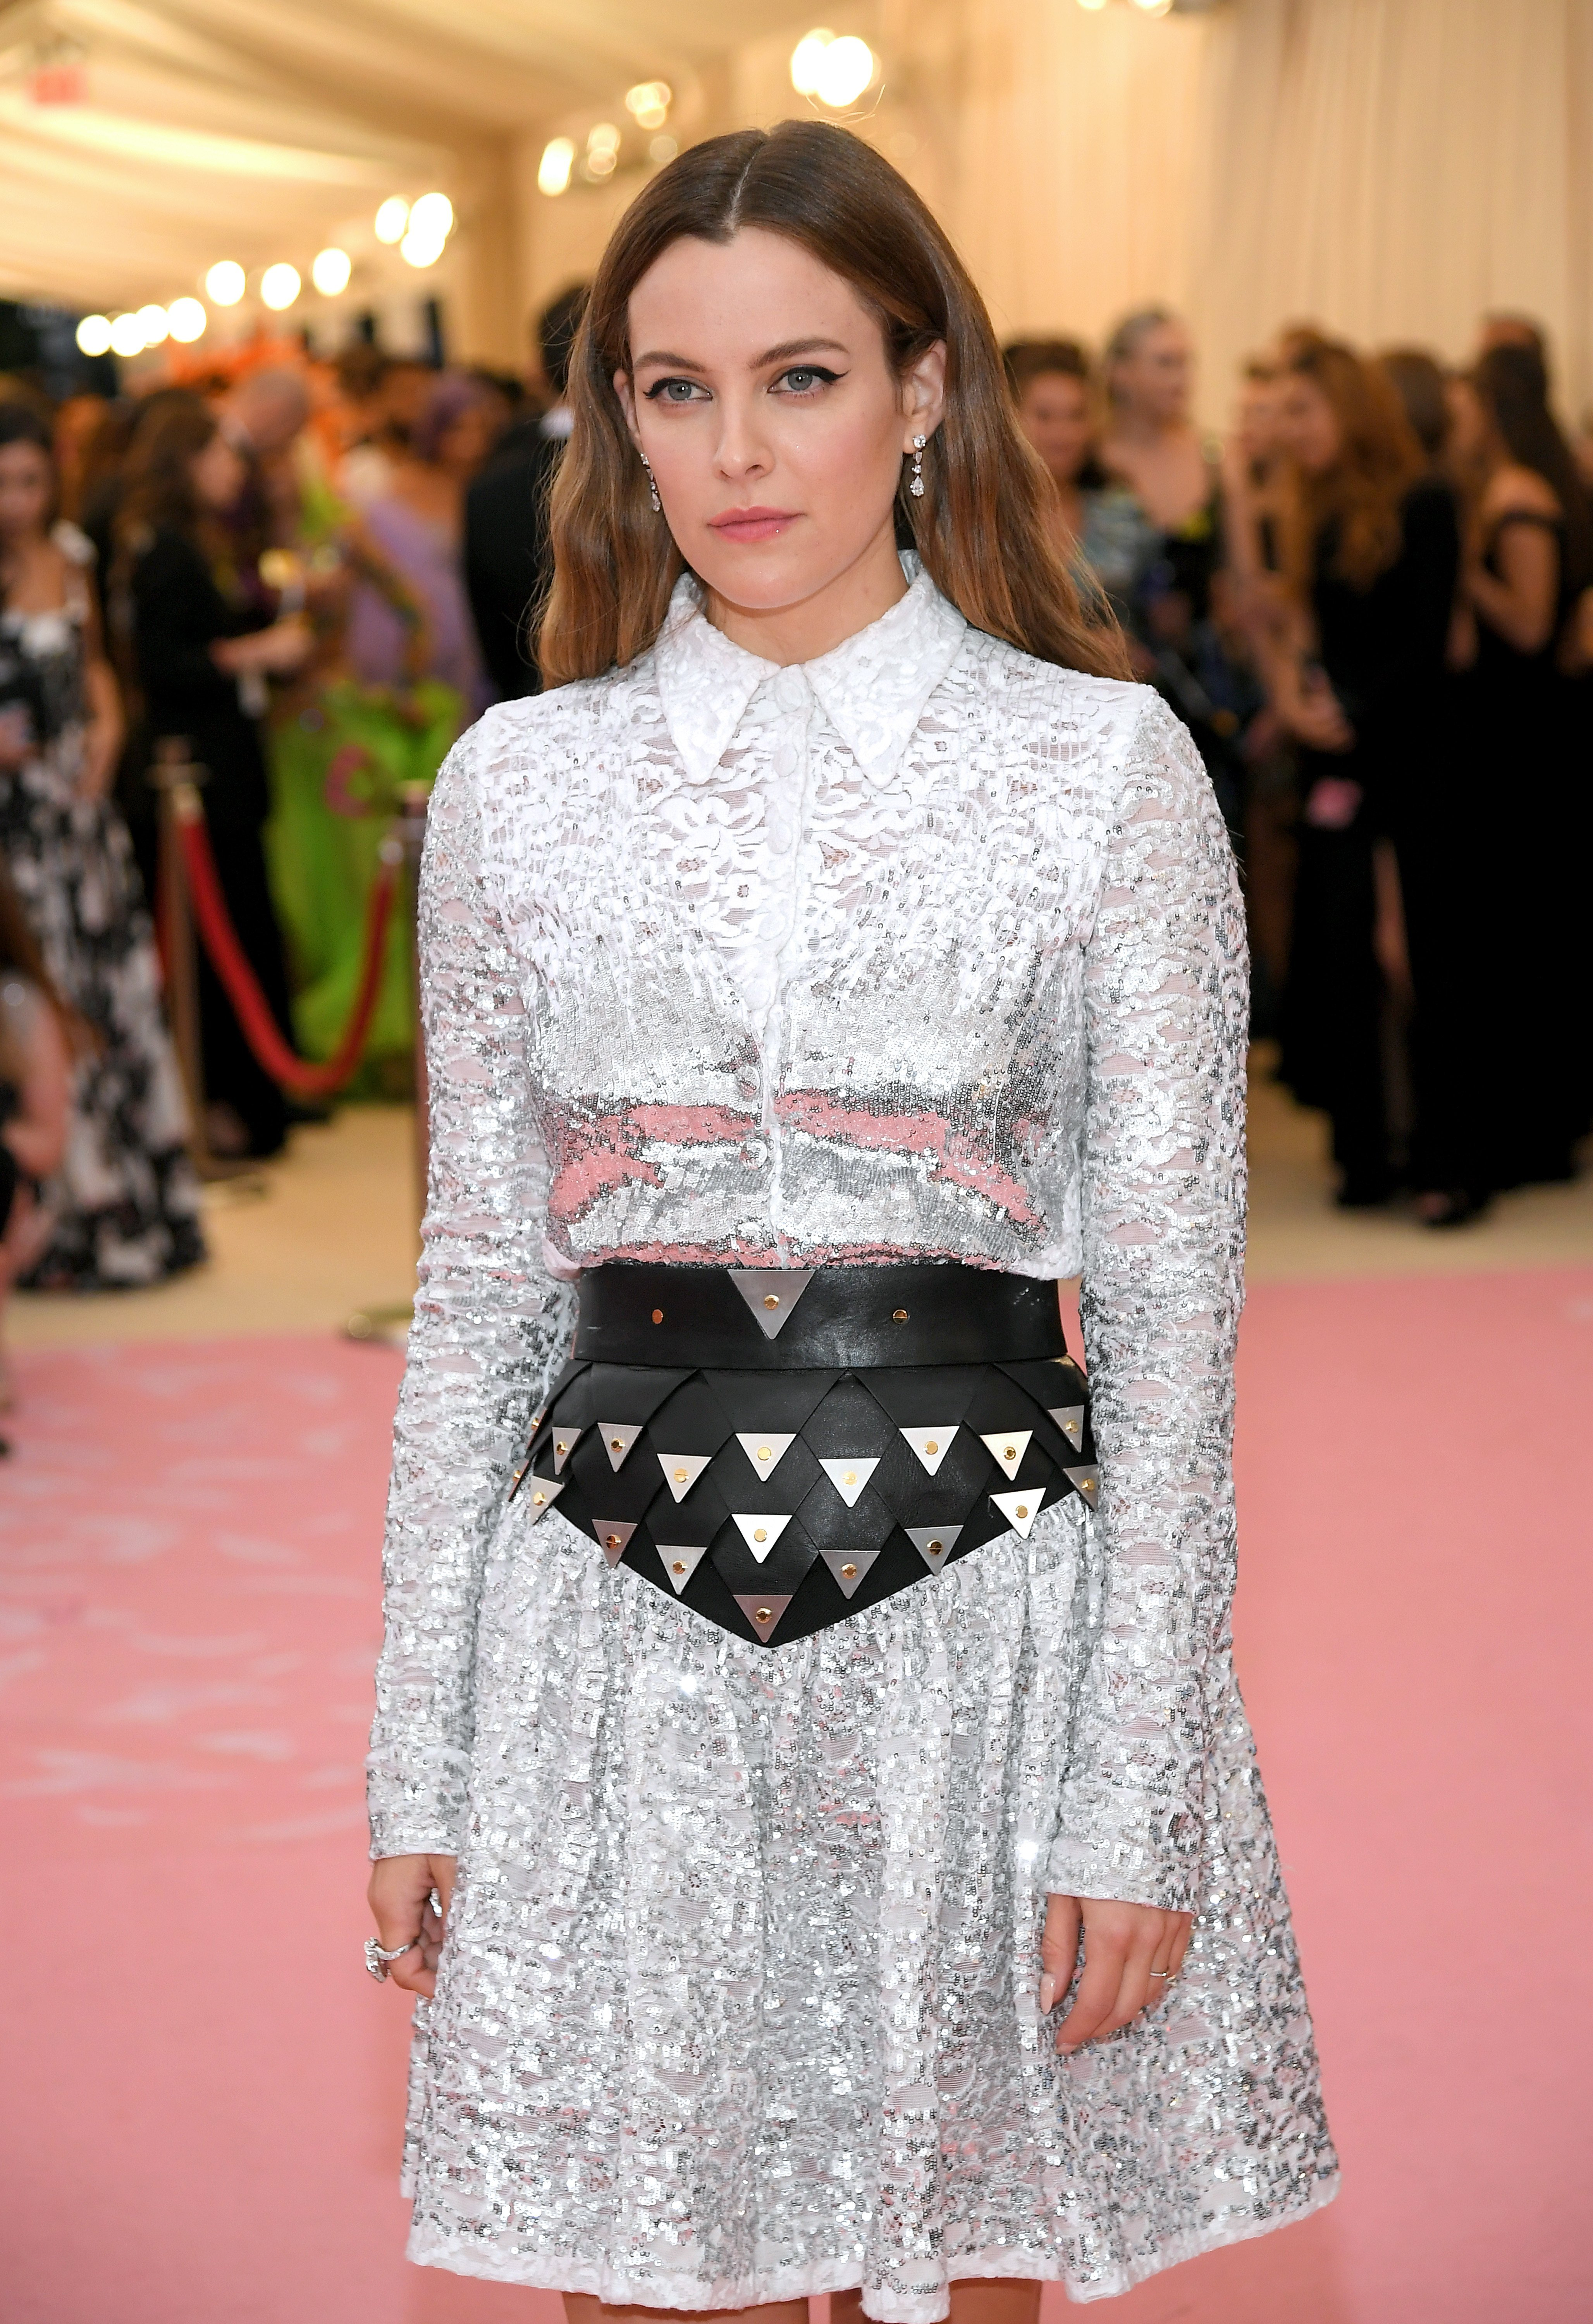 Riley Keough attends the Met Gala Celebrating Camp: Notes on Fashion in New York City on May 6, 2019 | Photo: Getty Images